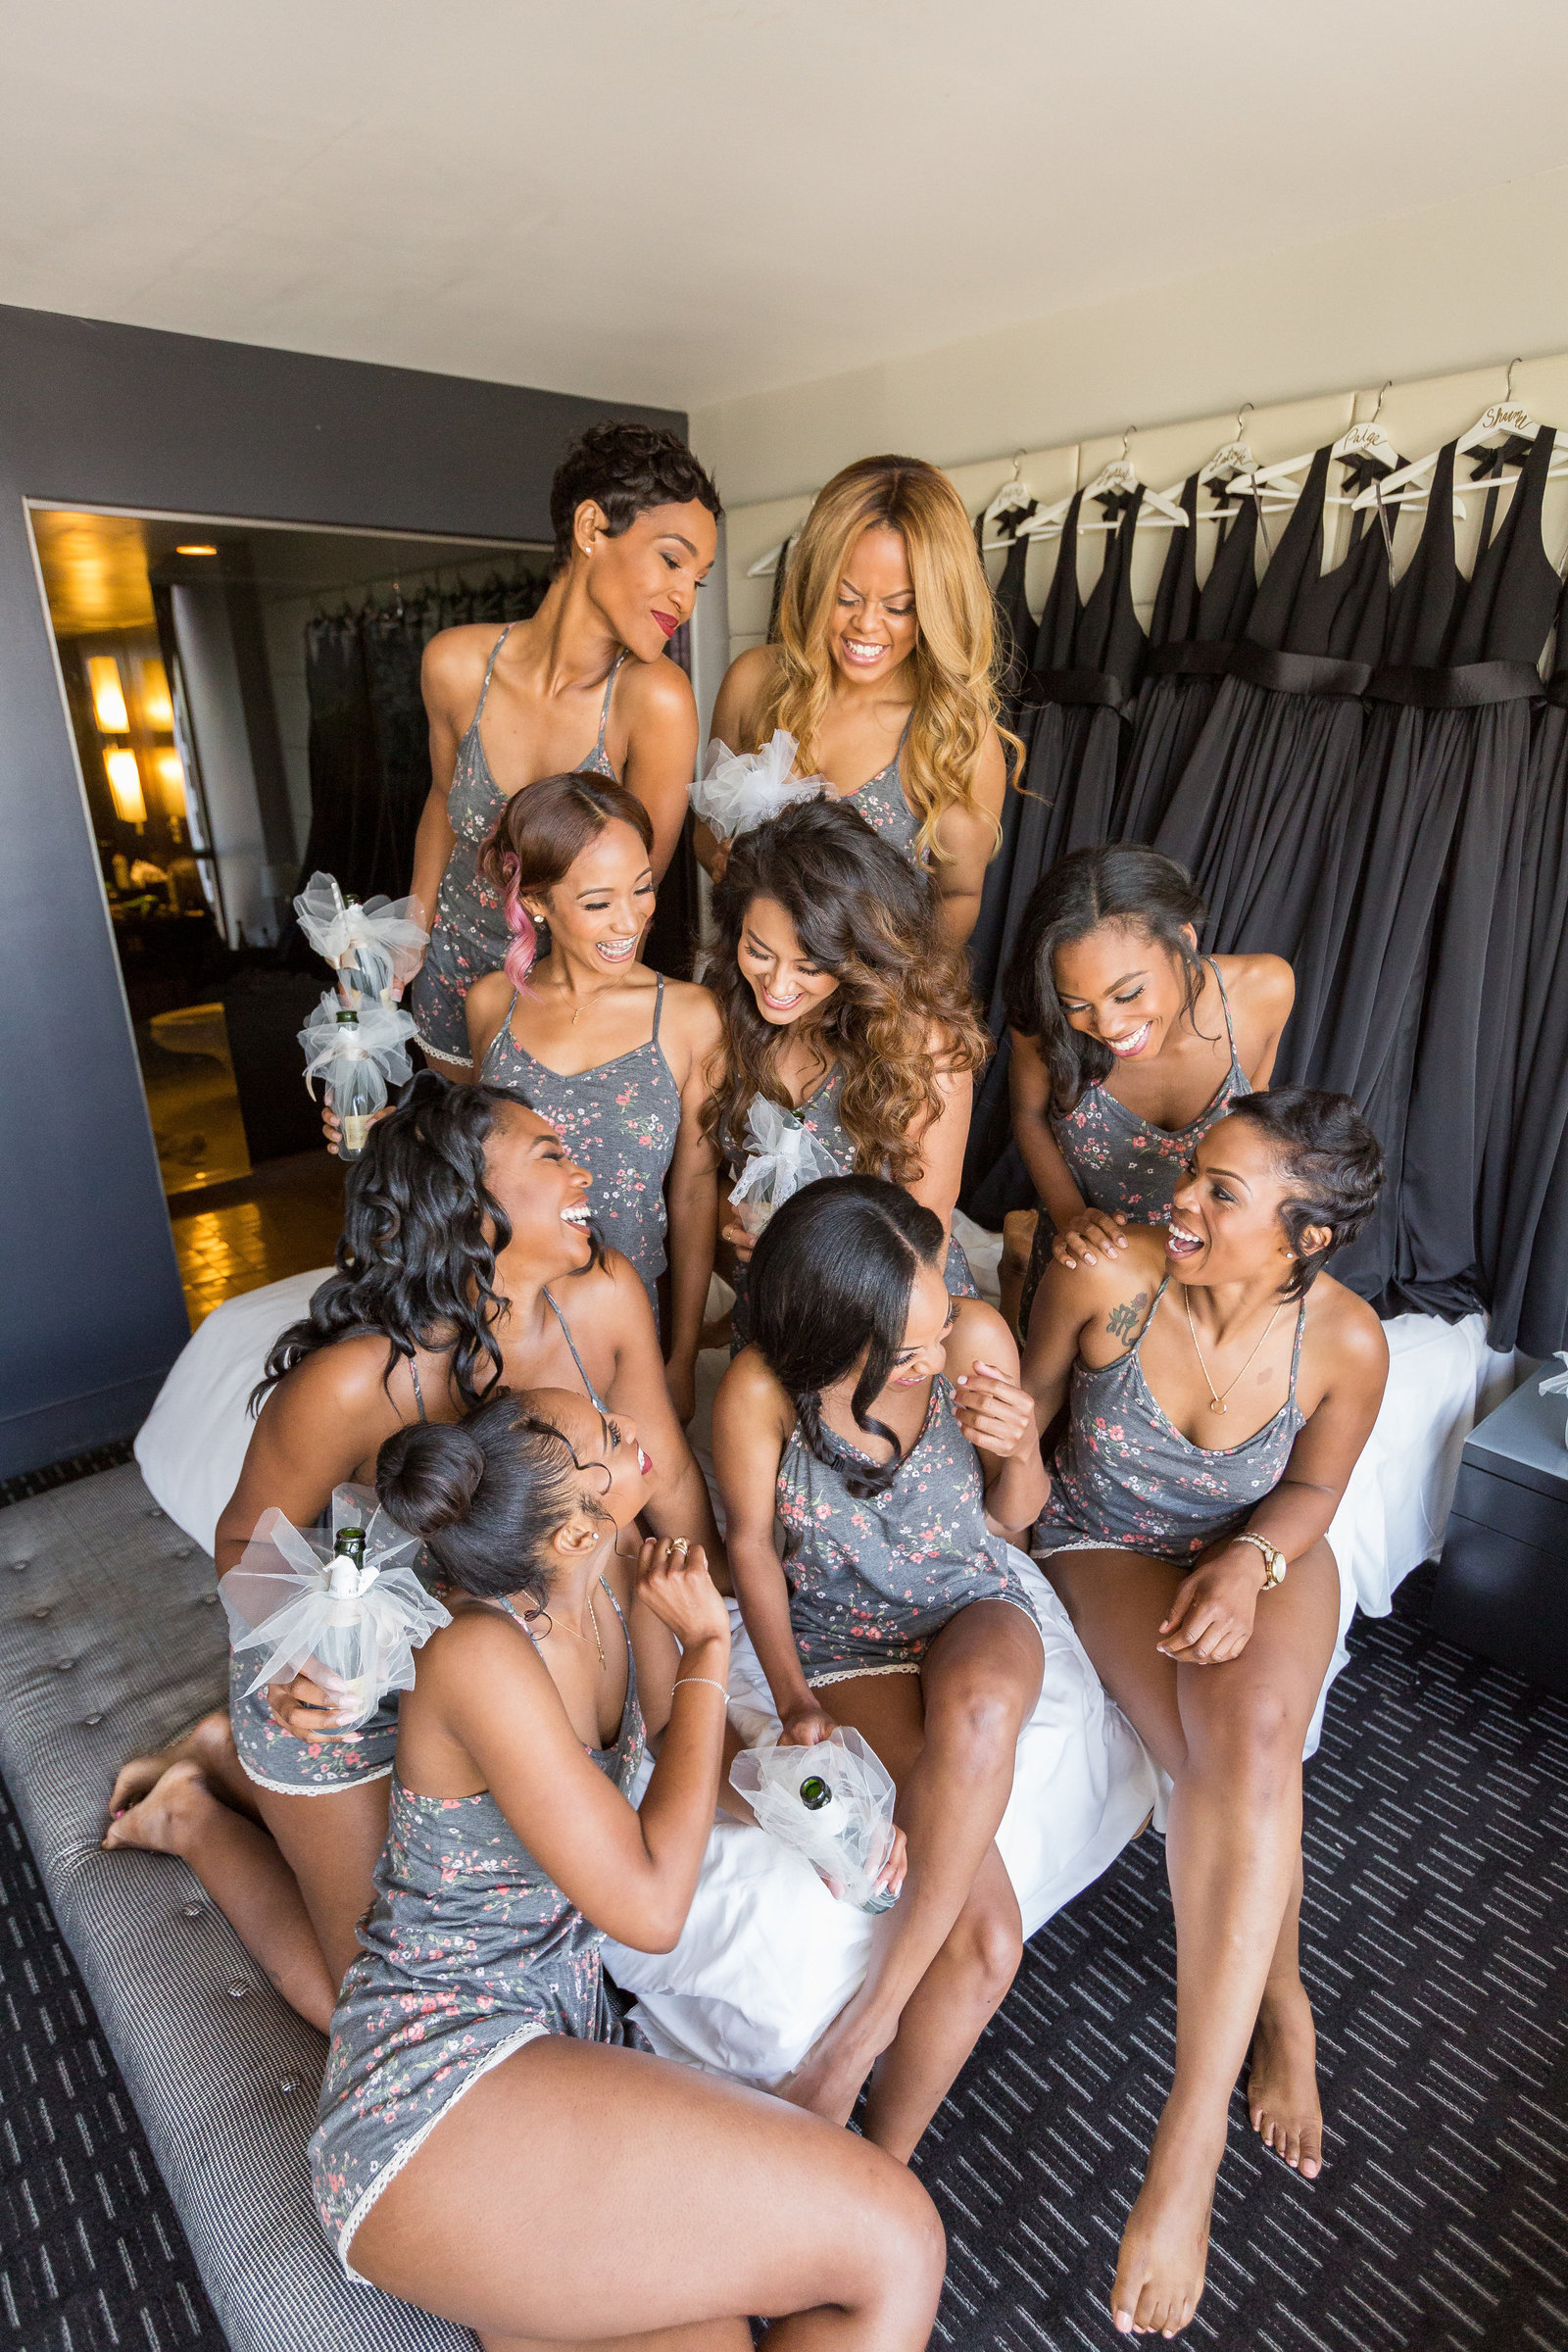 W Atlanta Midtown wedding - Mecca Gamble Photography - bridemaids photo ideas